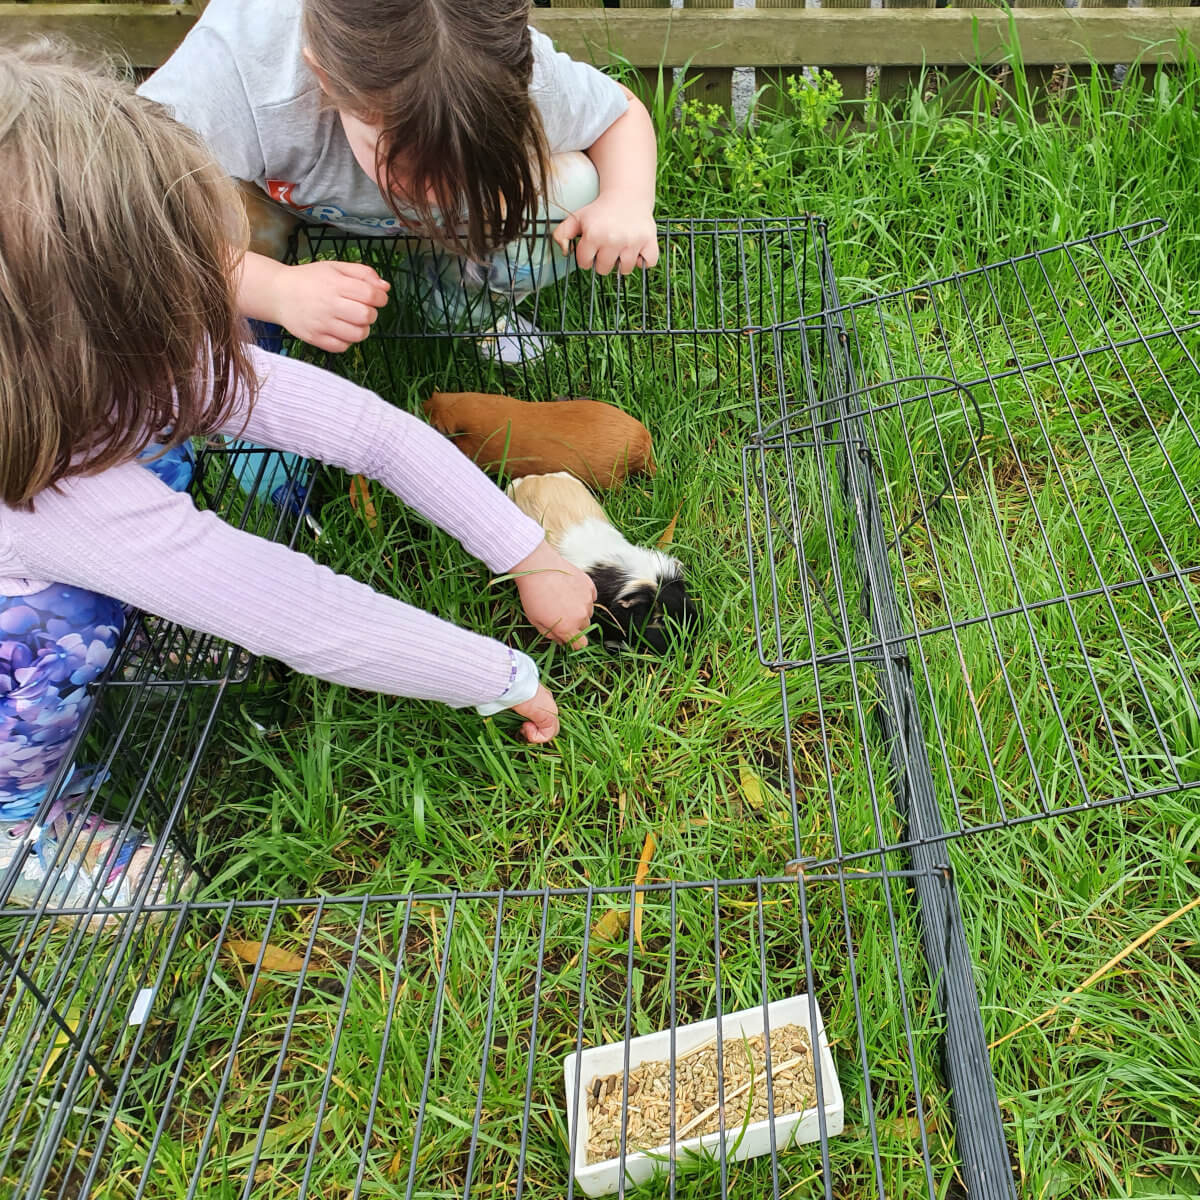 Guinea pigs outside on the grass